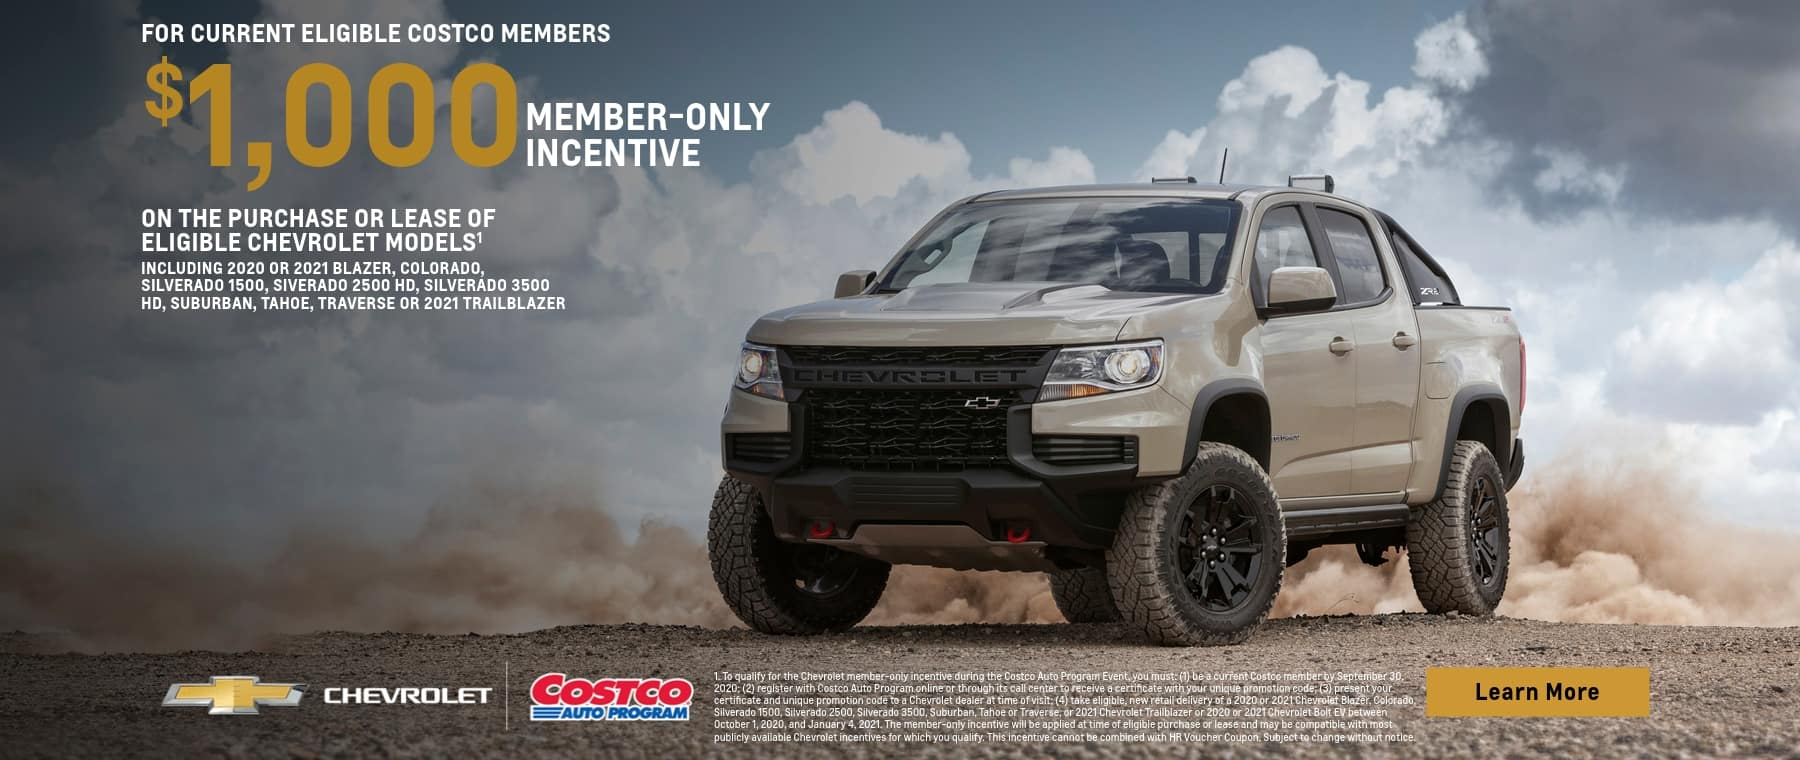 New Chevy Colorado Costco Rebate In Oklahoma